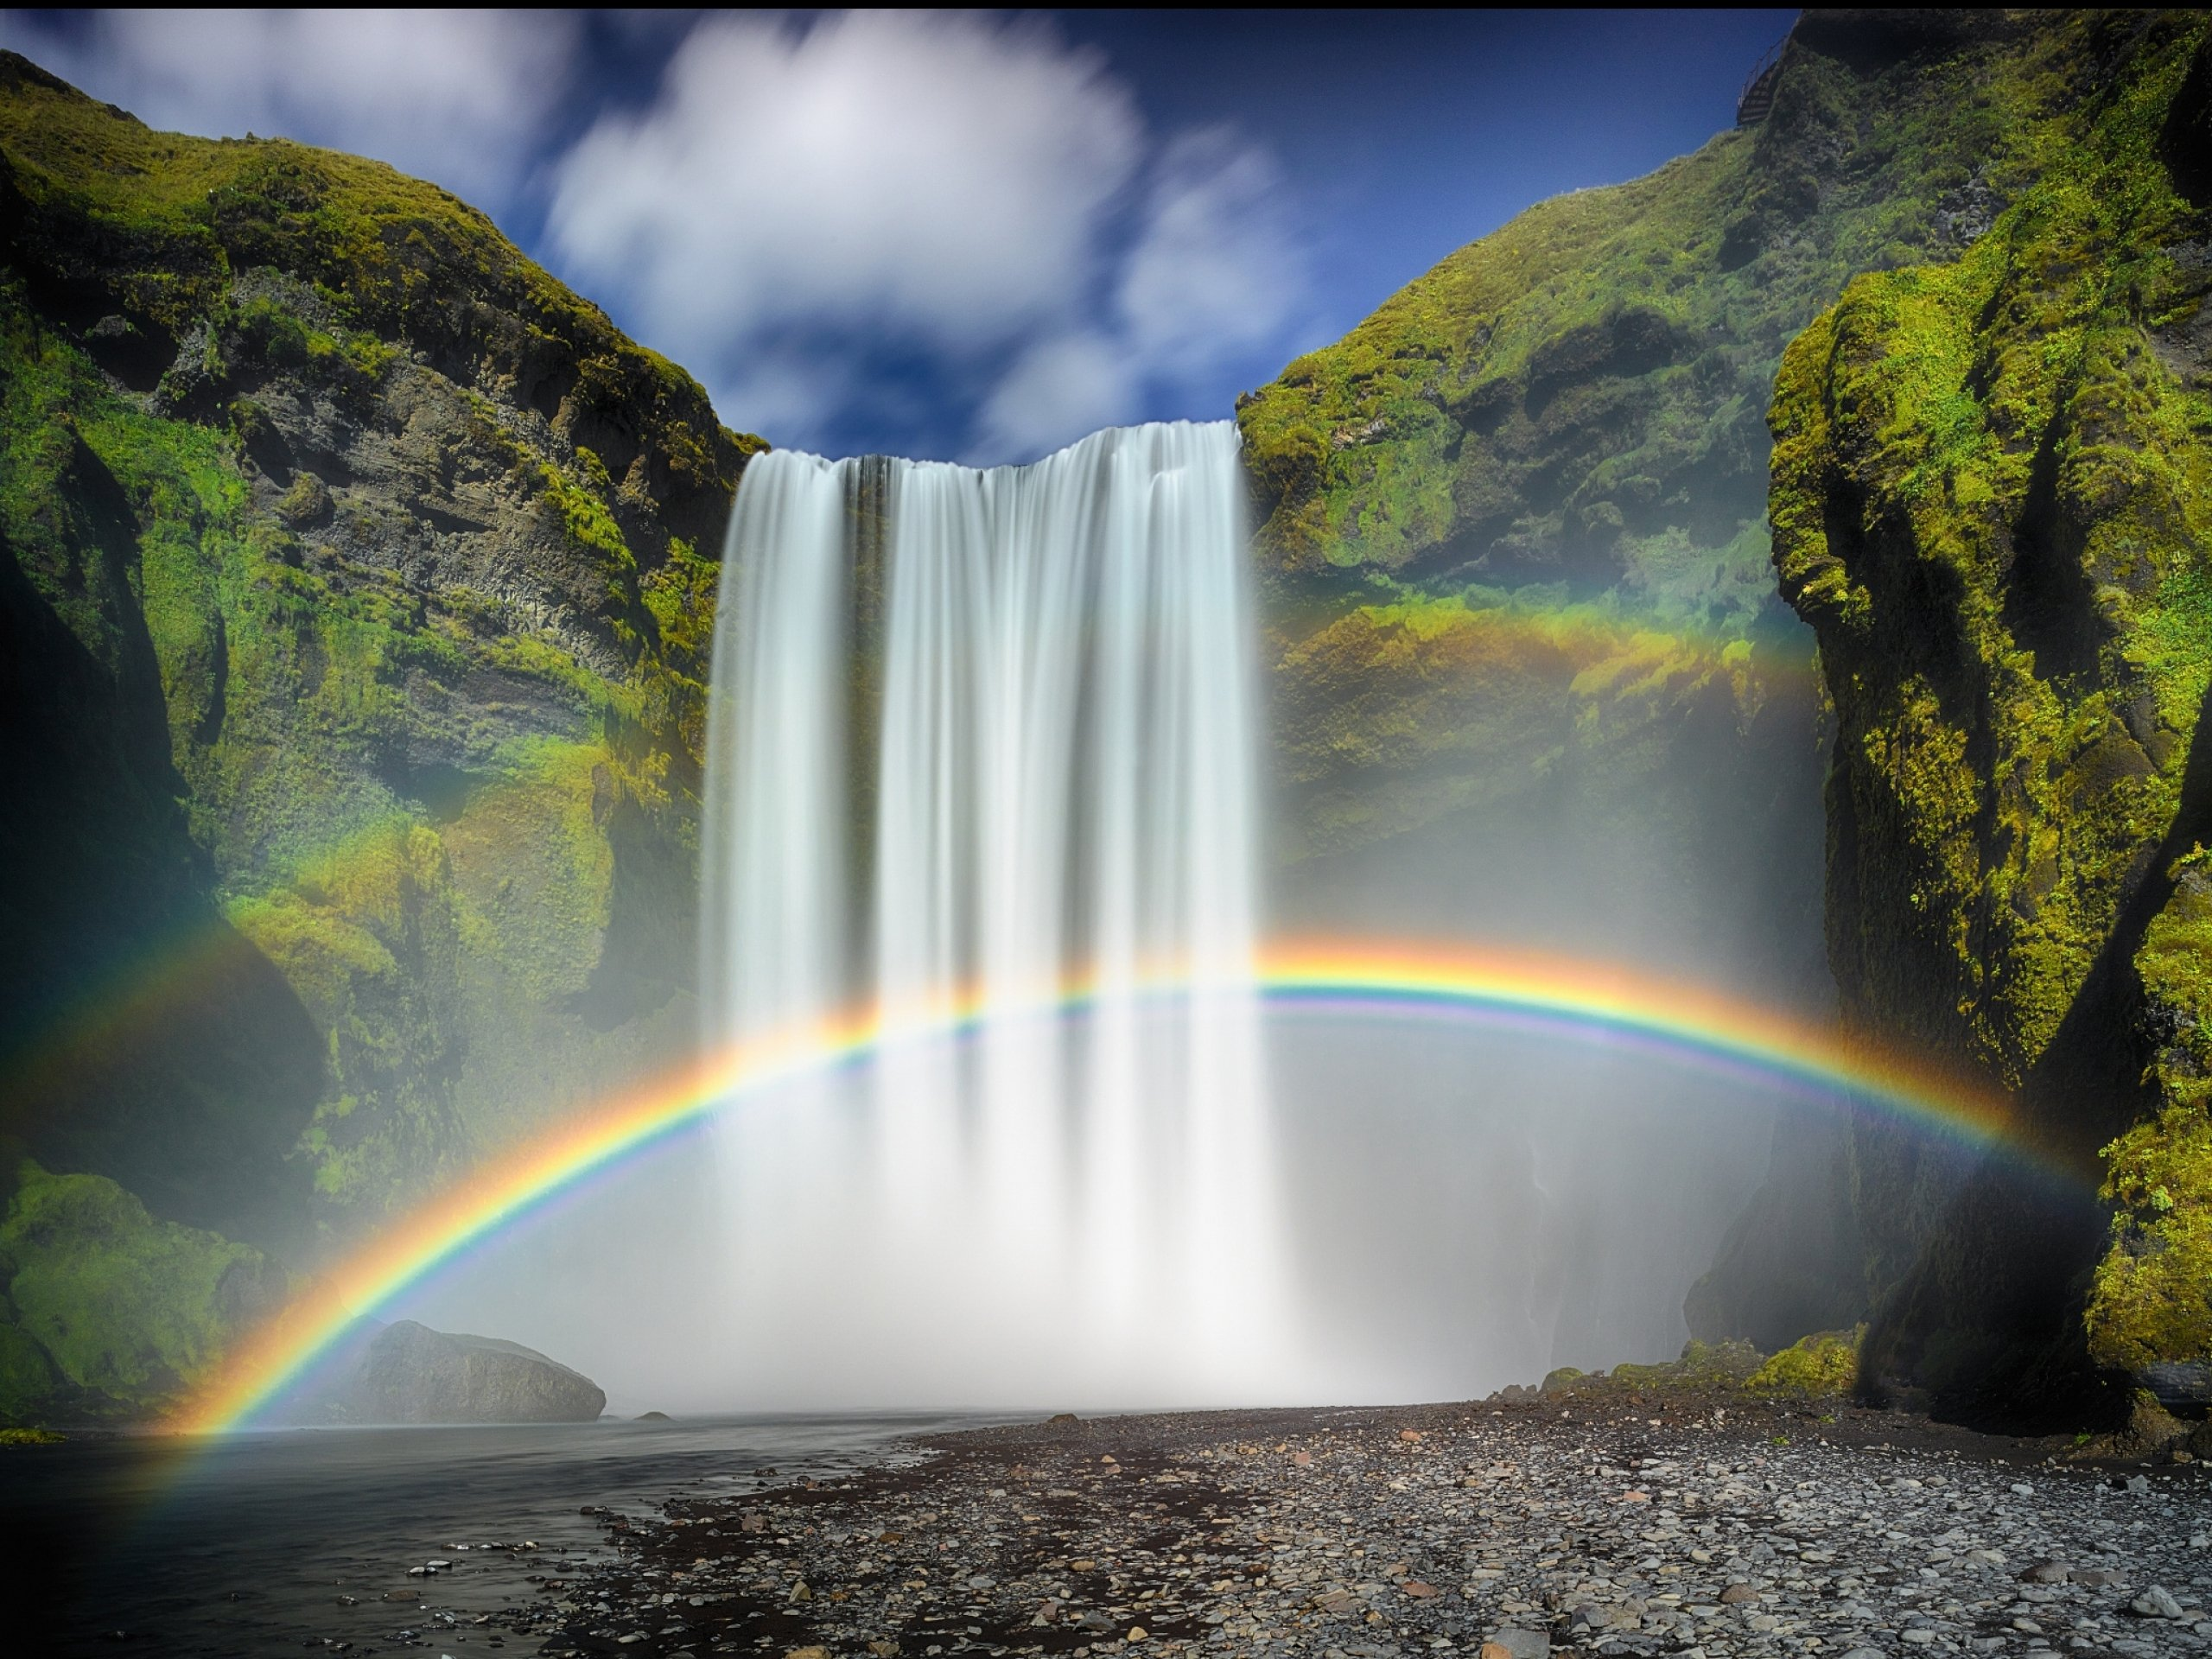 Rainbow by waterfall photo